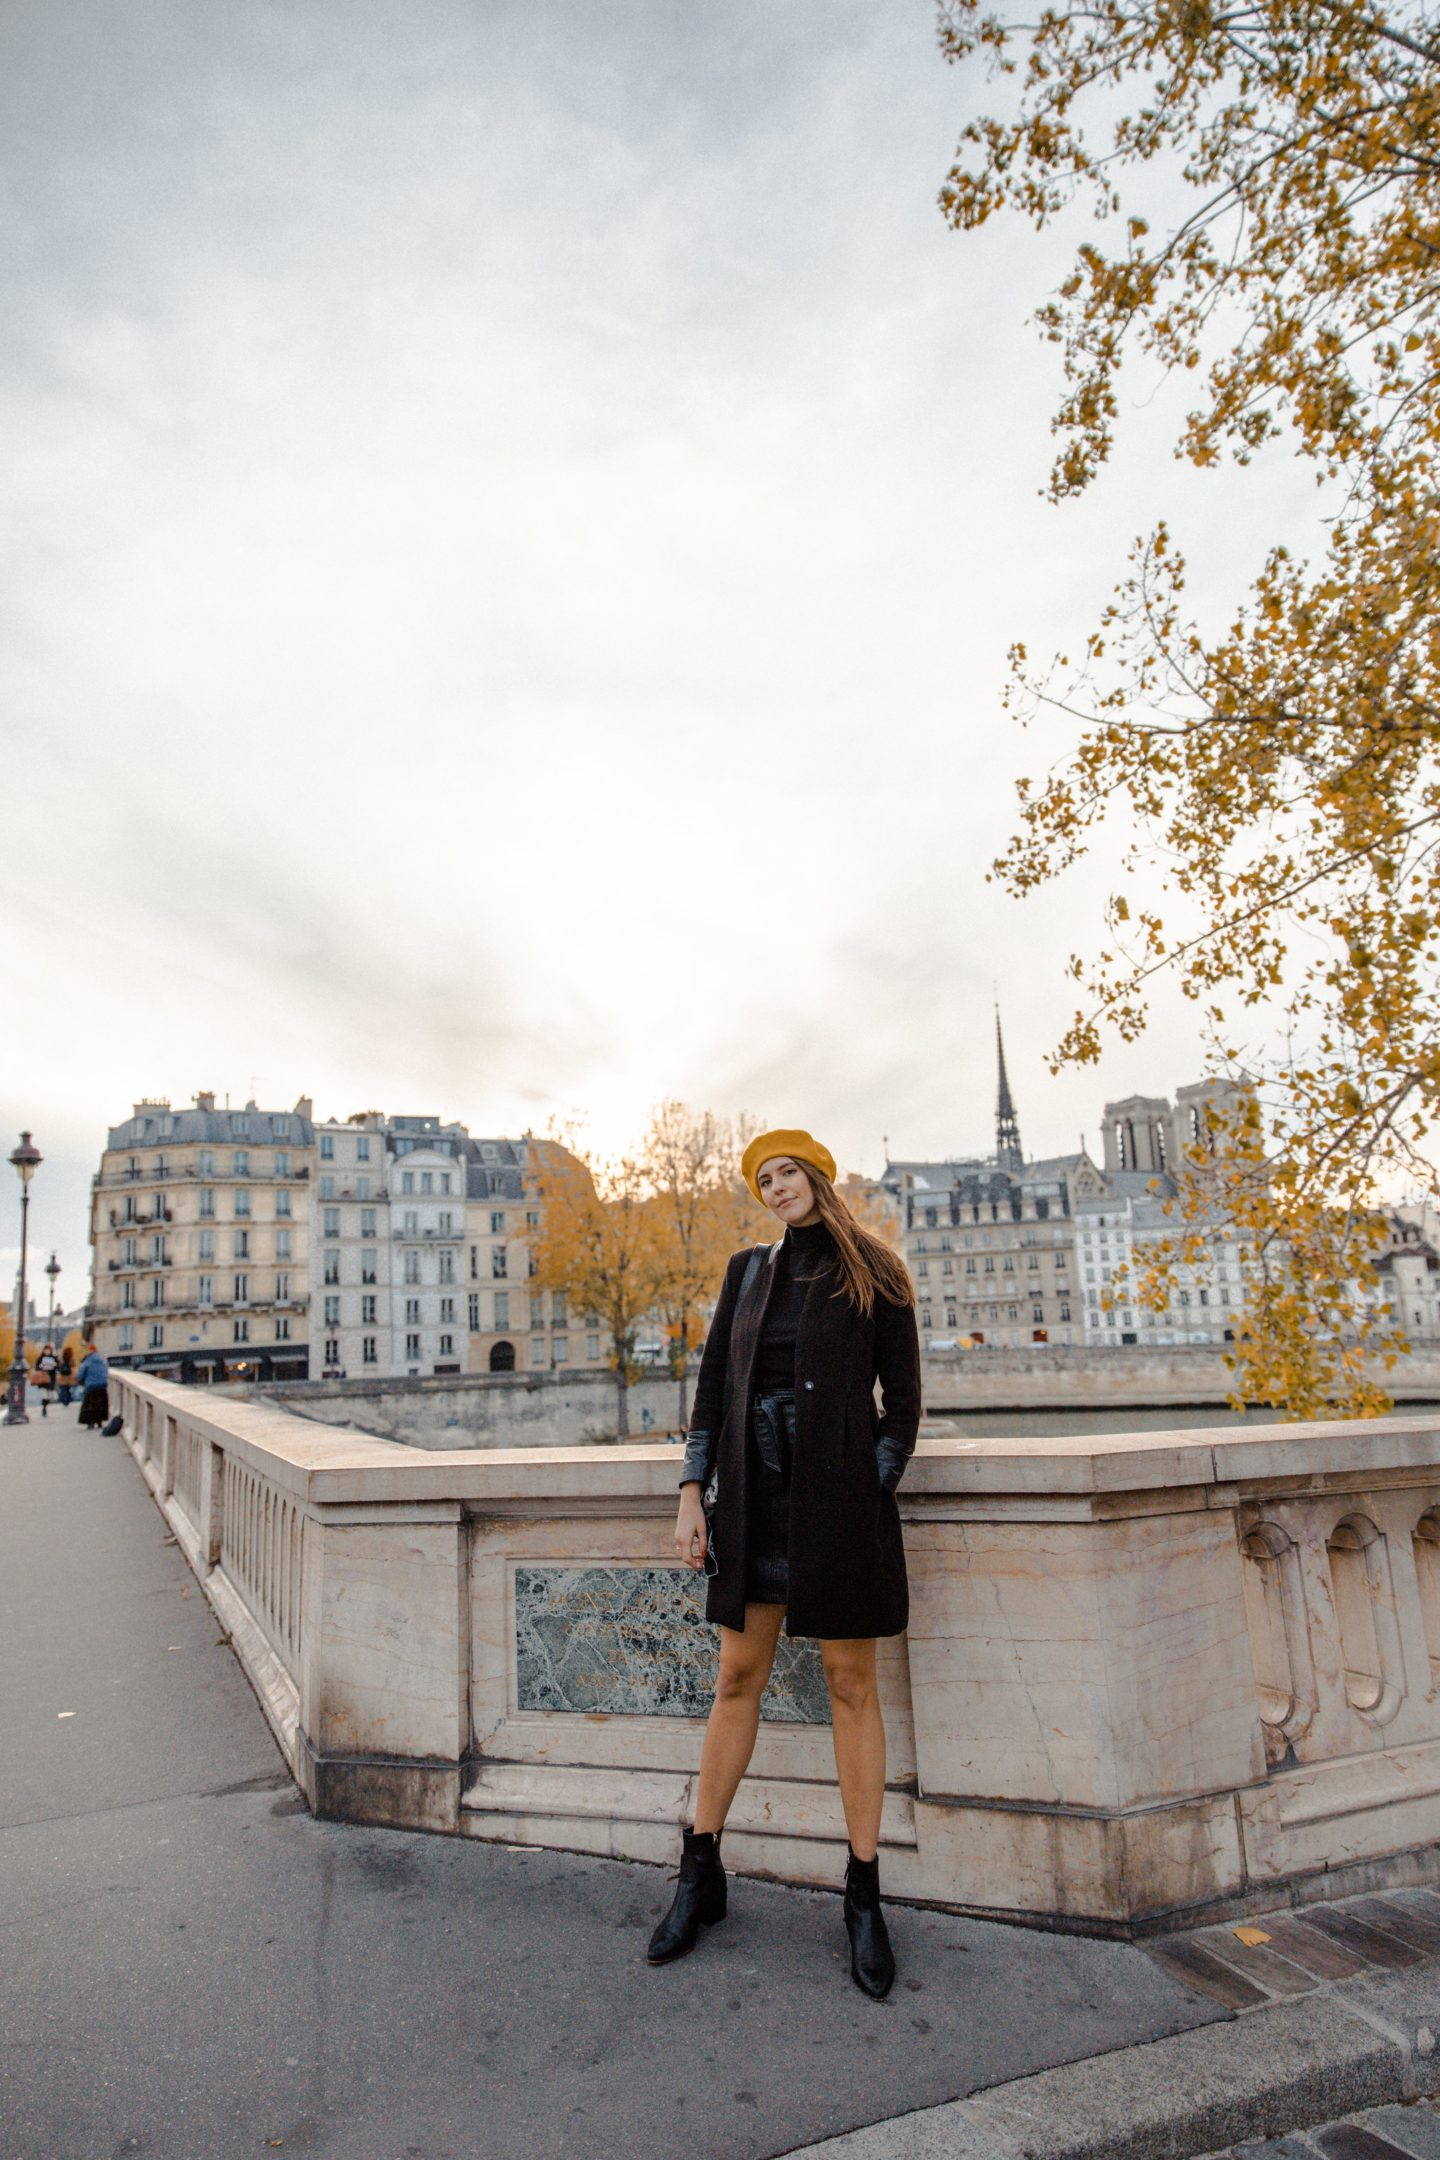 The Best Paris Instagram Spots | 15 Parisian Shots You Can't Miss: Seine River Paris Dana Berez